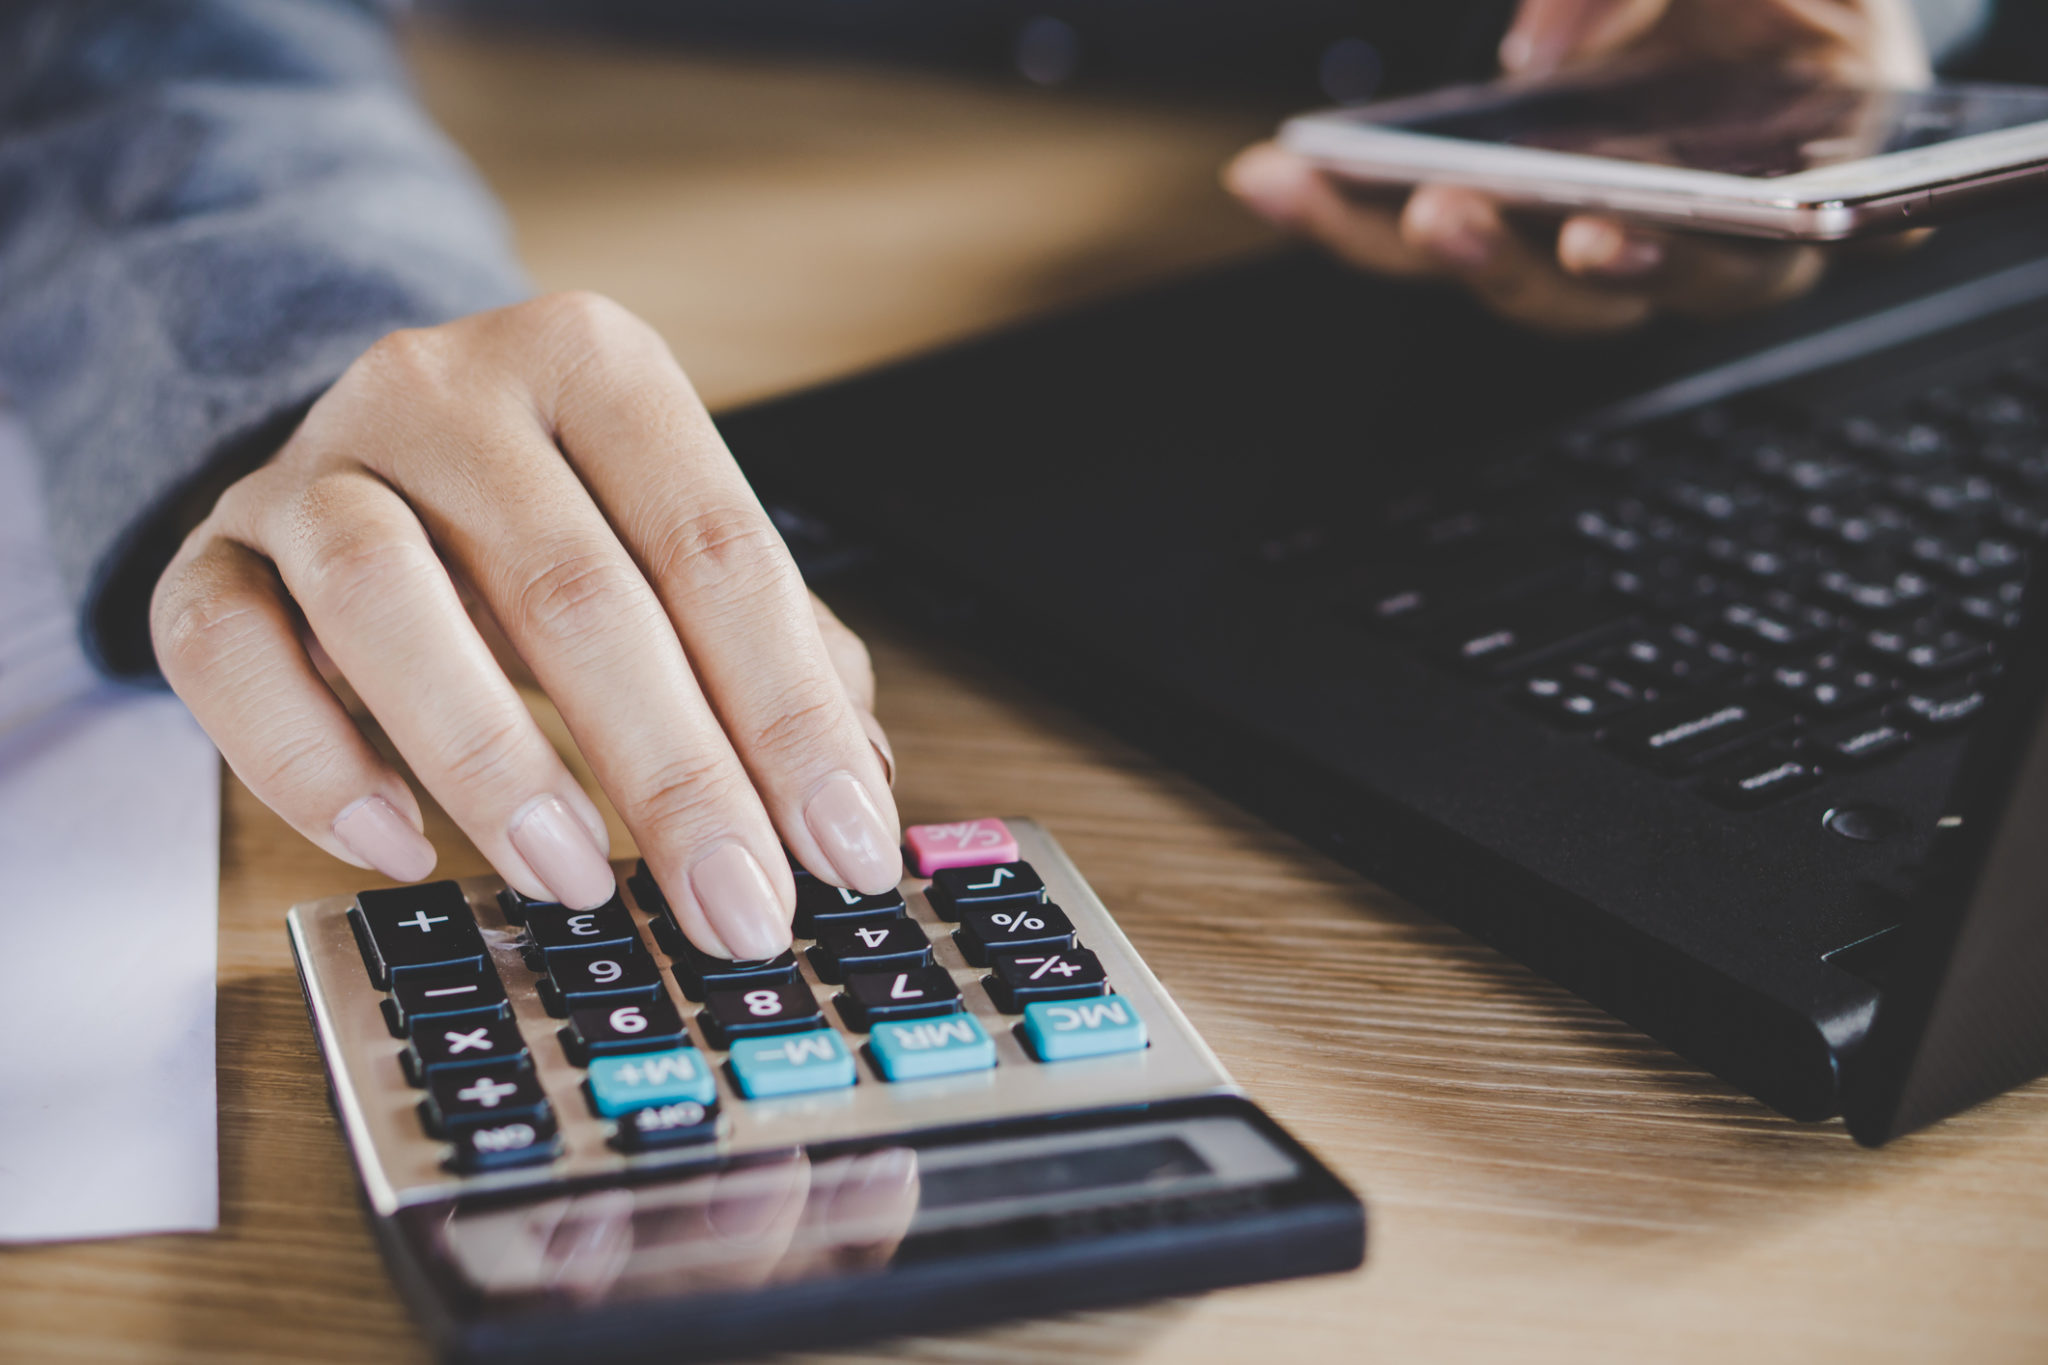 businesswoman hand calculating while working on computer laptop